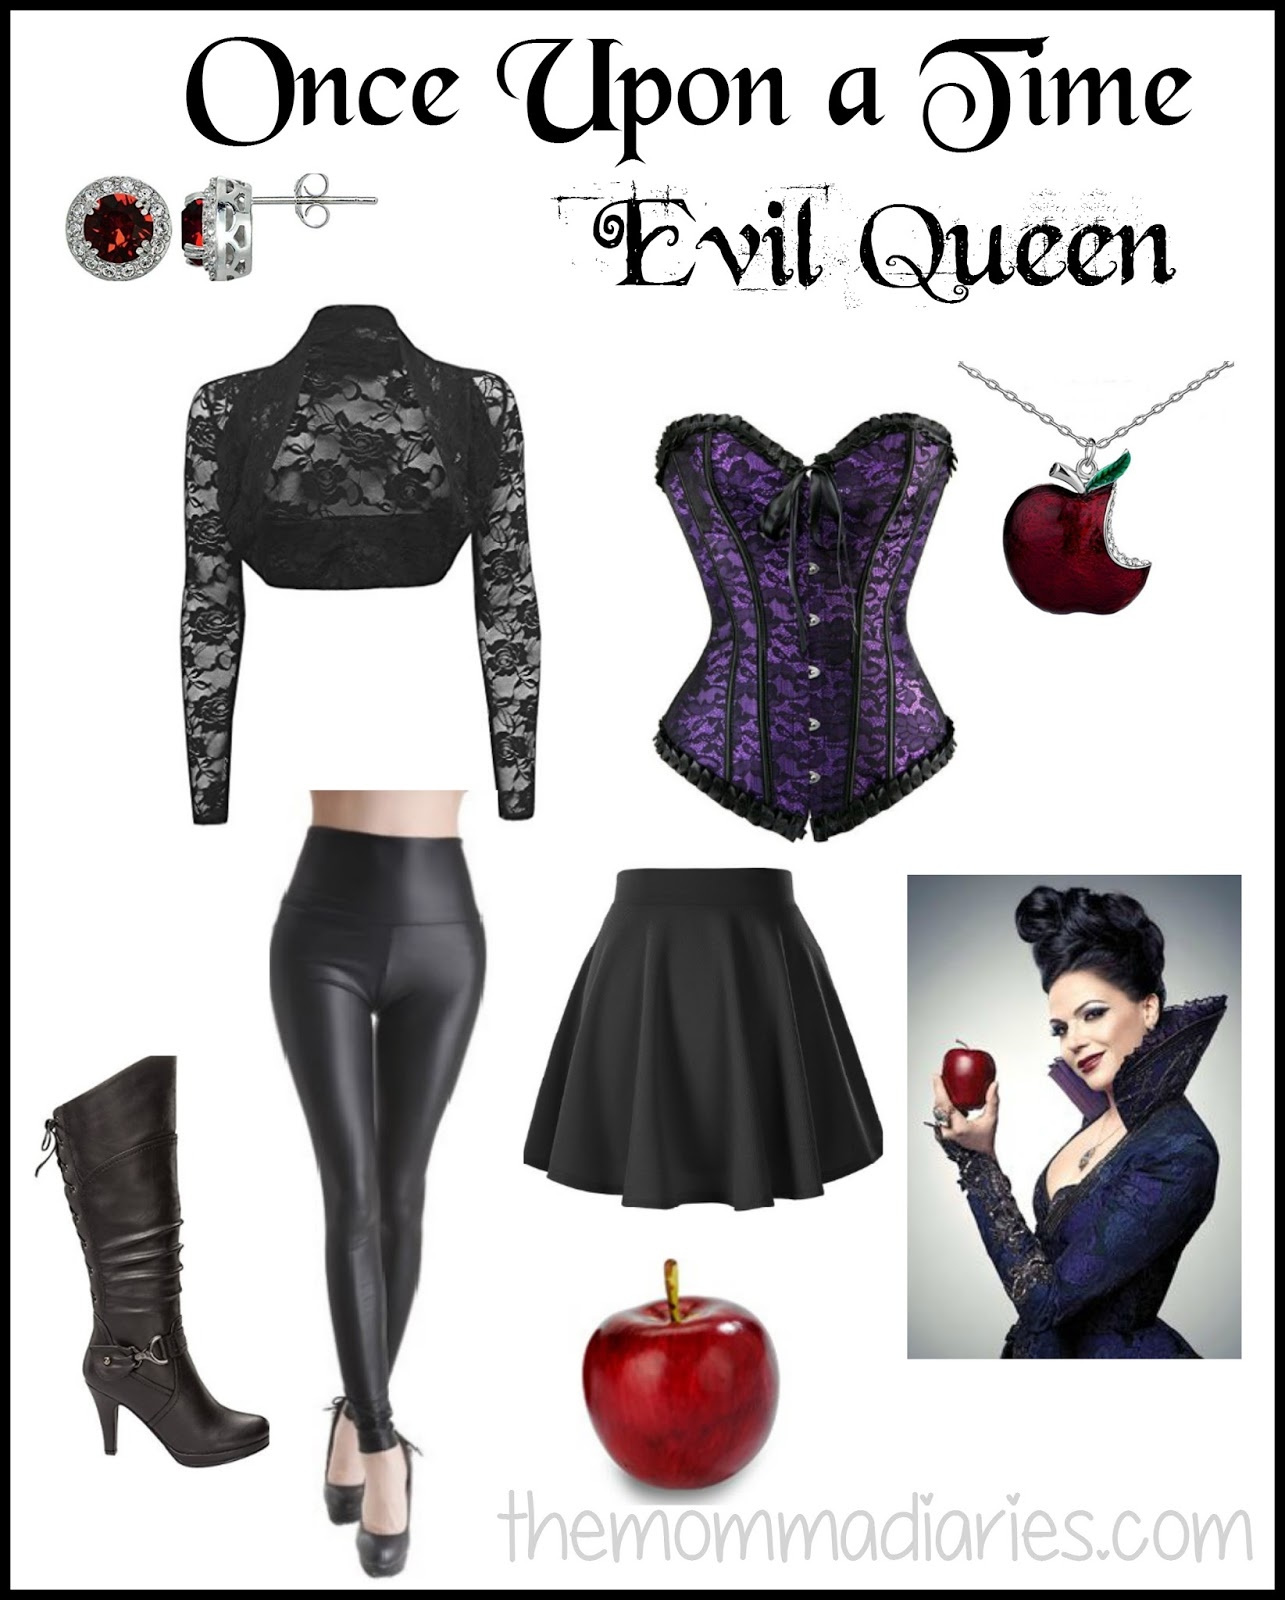 Once Upon A Time Evil Queen Once Upon A Time Evil Queen DIY Costume  sc 1 st  The Momma Diaries & Once Upon a Time Evil Queen DIY Costume - The Momma Diaries